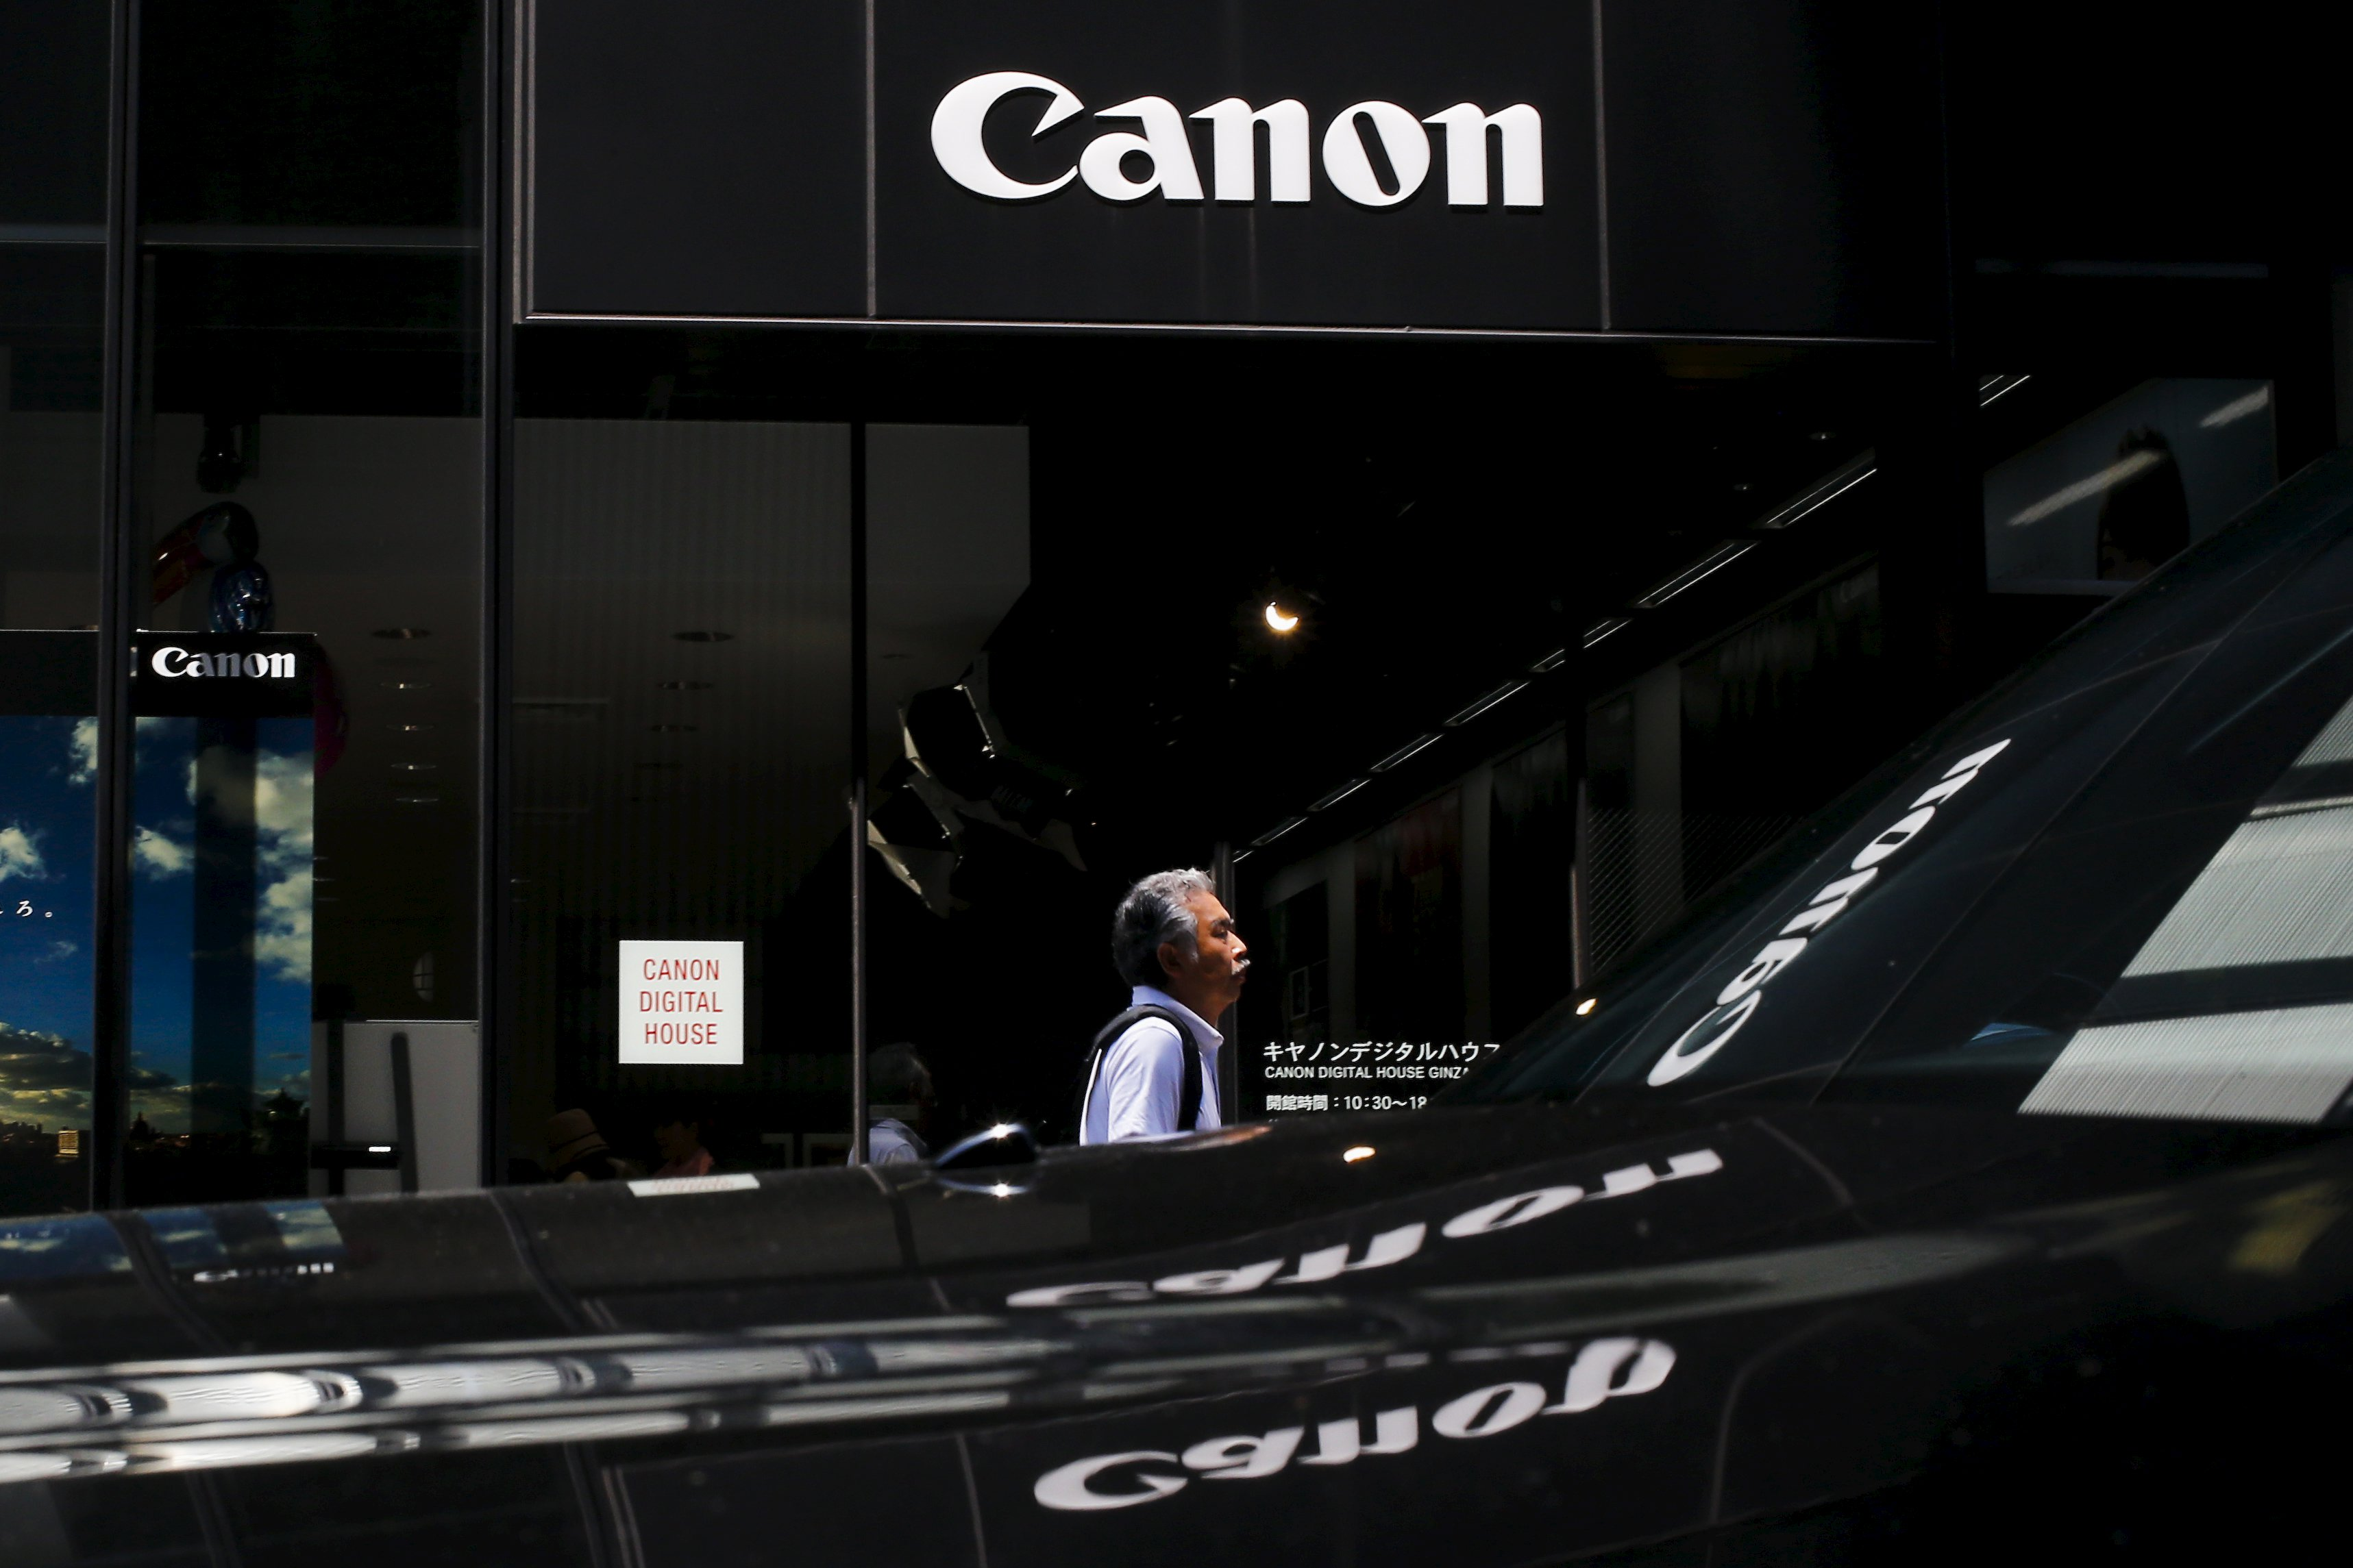 A man walks past a showroom of Japanese imaging and optical products manufacturer Canon in Tokyo July 27, 2015. Japan's Canon Inc on Monday lowered its earnings outlook for the full year and reported a 16 percent fall in second-quarter net profit, as fewer consumers bought new compact digital cameras. Photo: Reuters